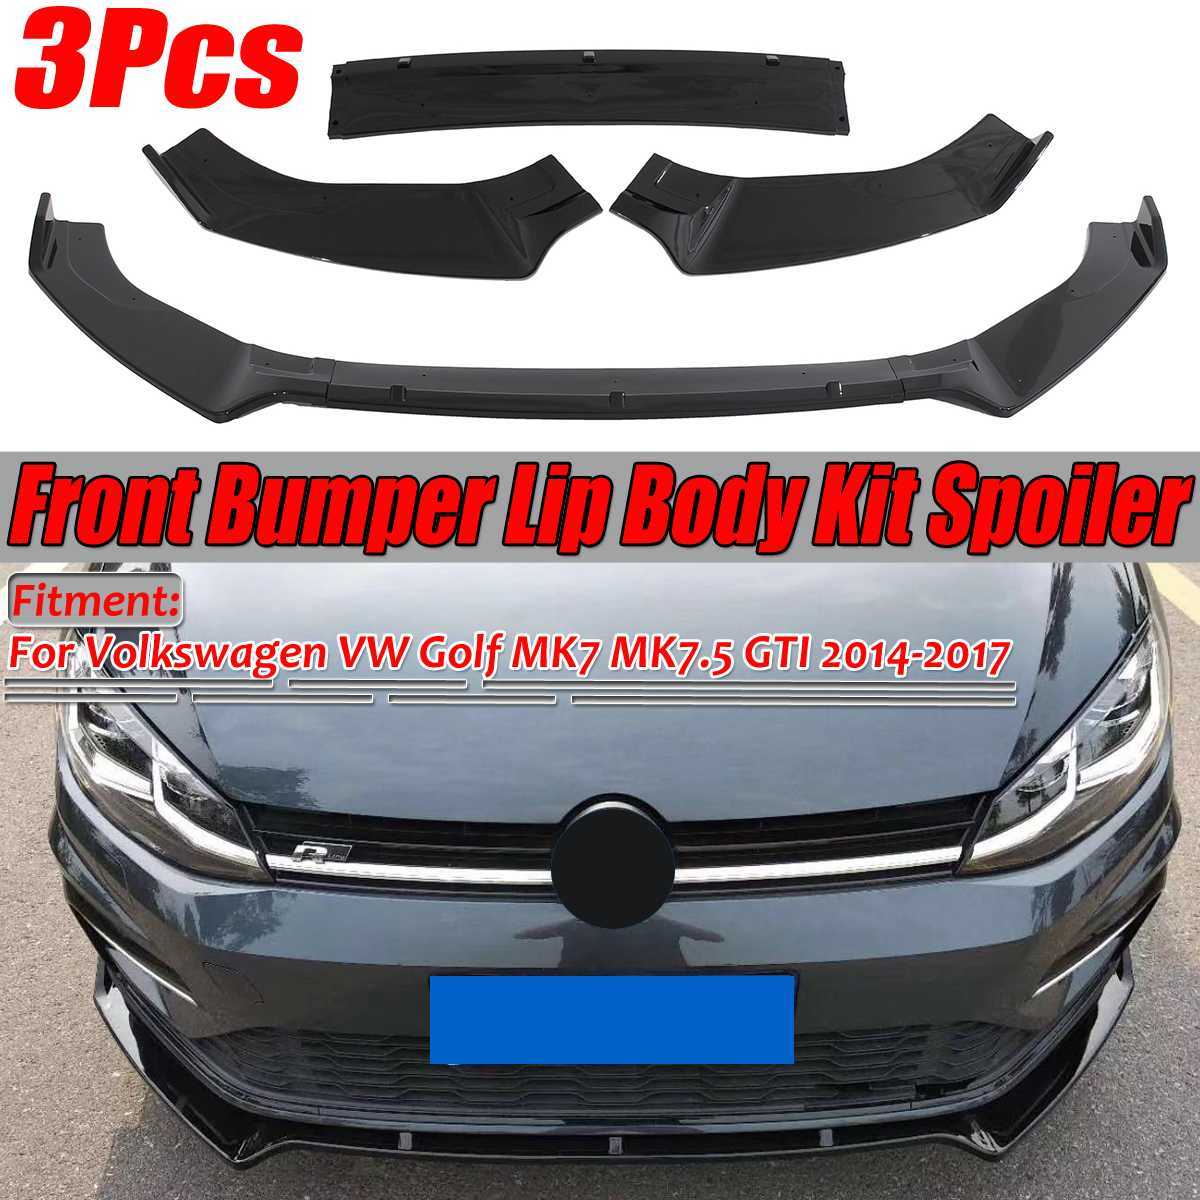 3PCS Glossy Black Car Front Bumper Splitter Lip Spoiler Cover Trim For Volkswagen For VW For Golf MK7 MK7.5 GTI R GTD 2014-2017